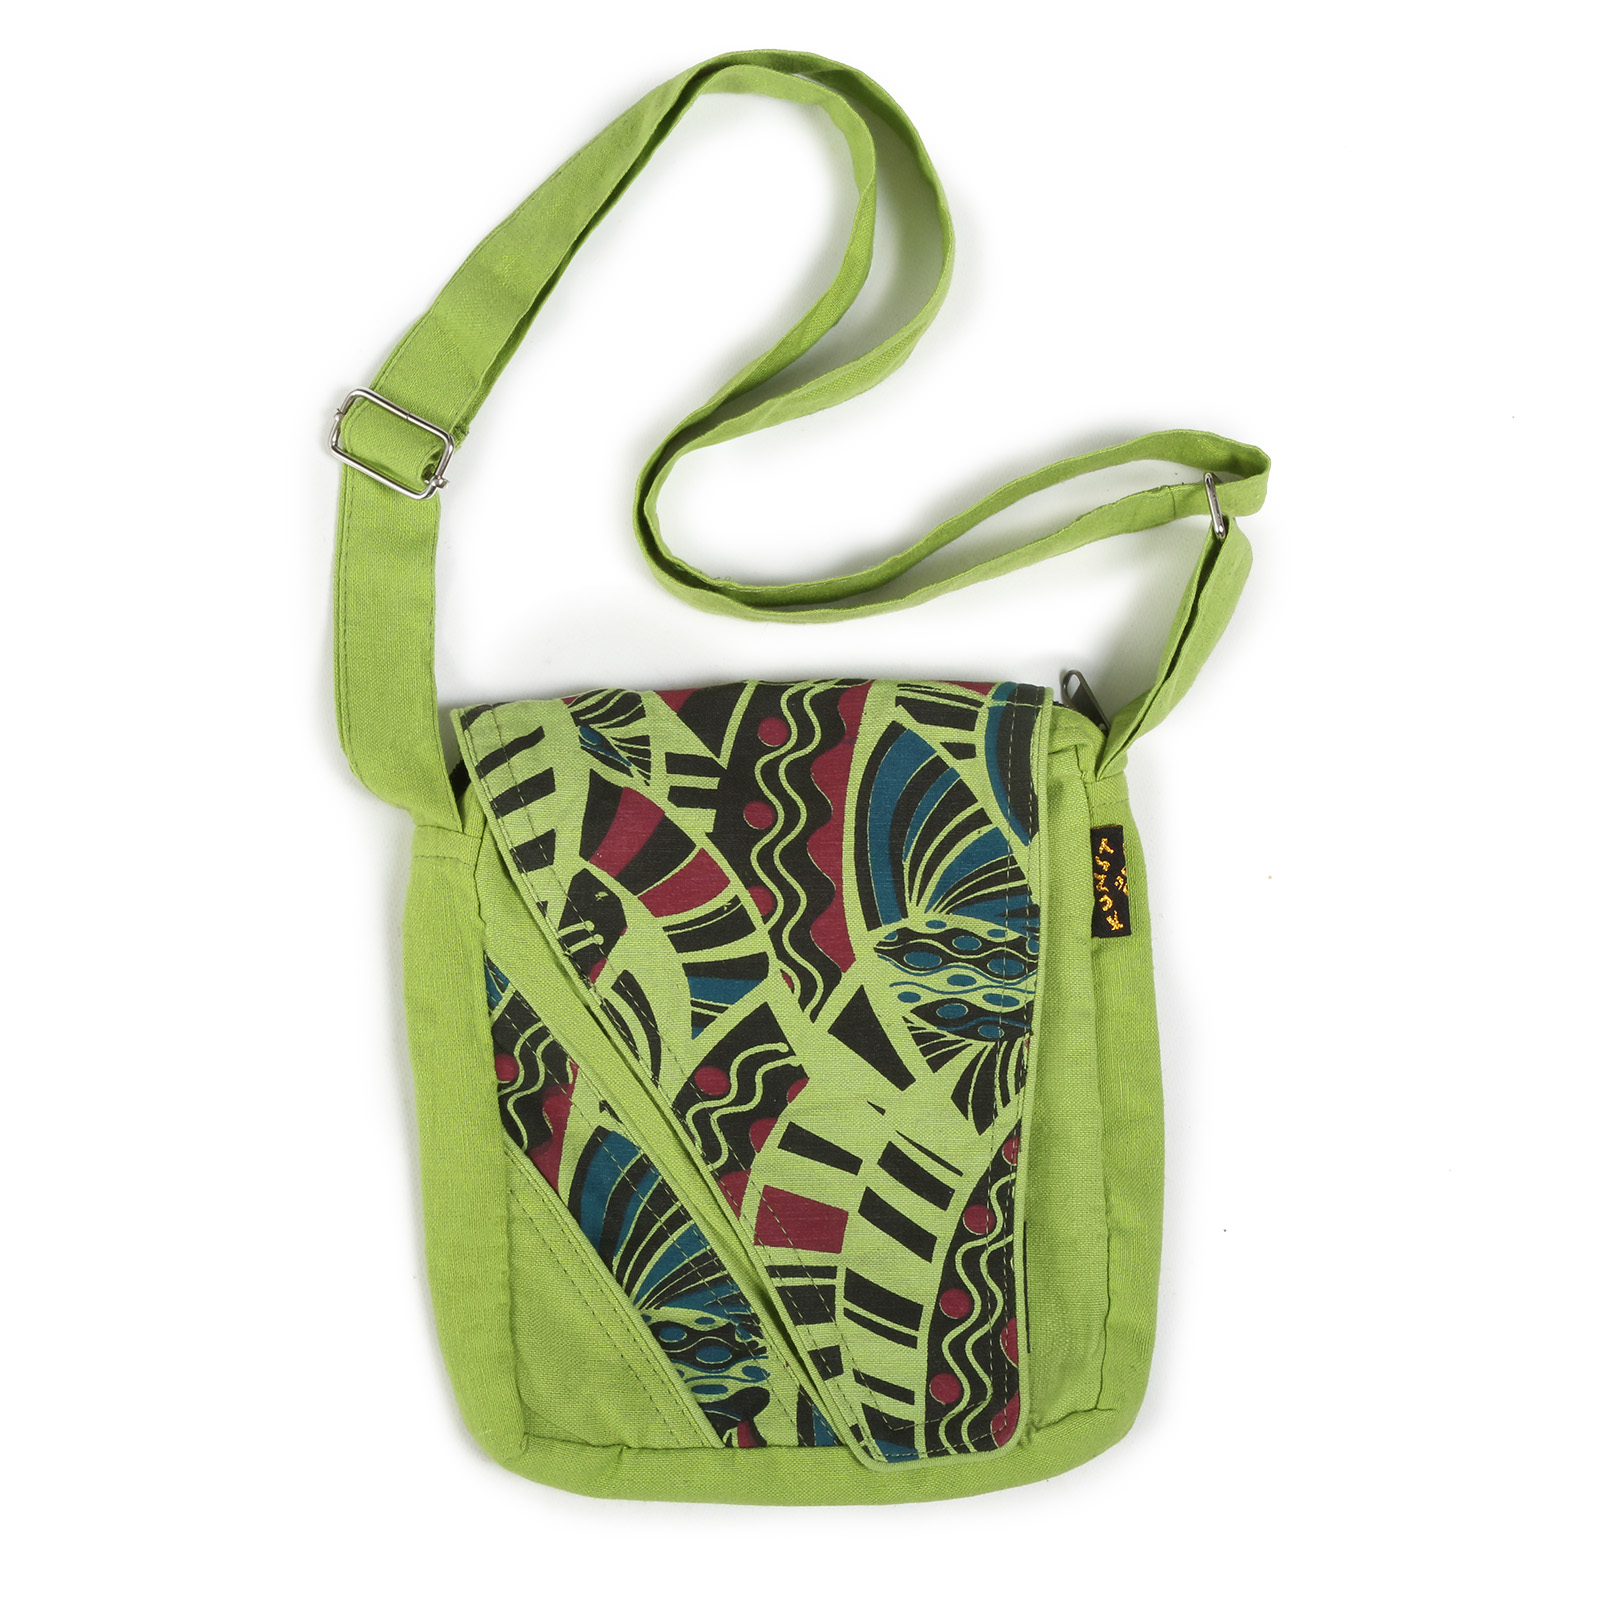 Alternative Damenhandtasche / Schultertasche Goa Psy 70er Retro Design